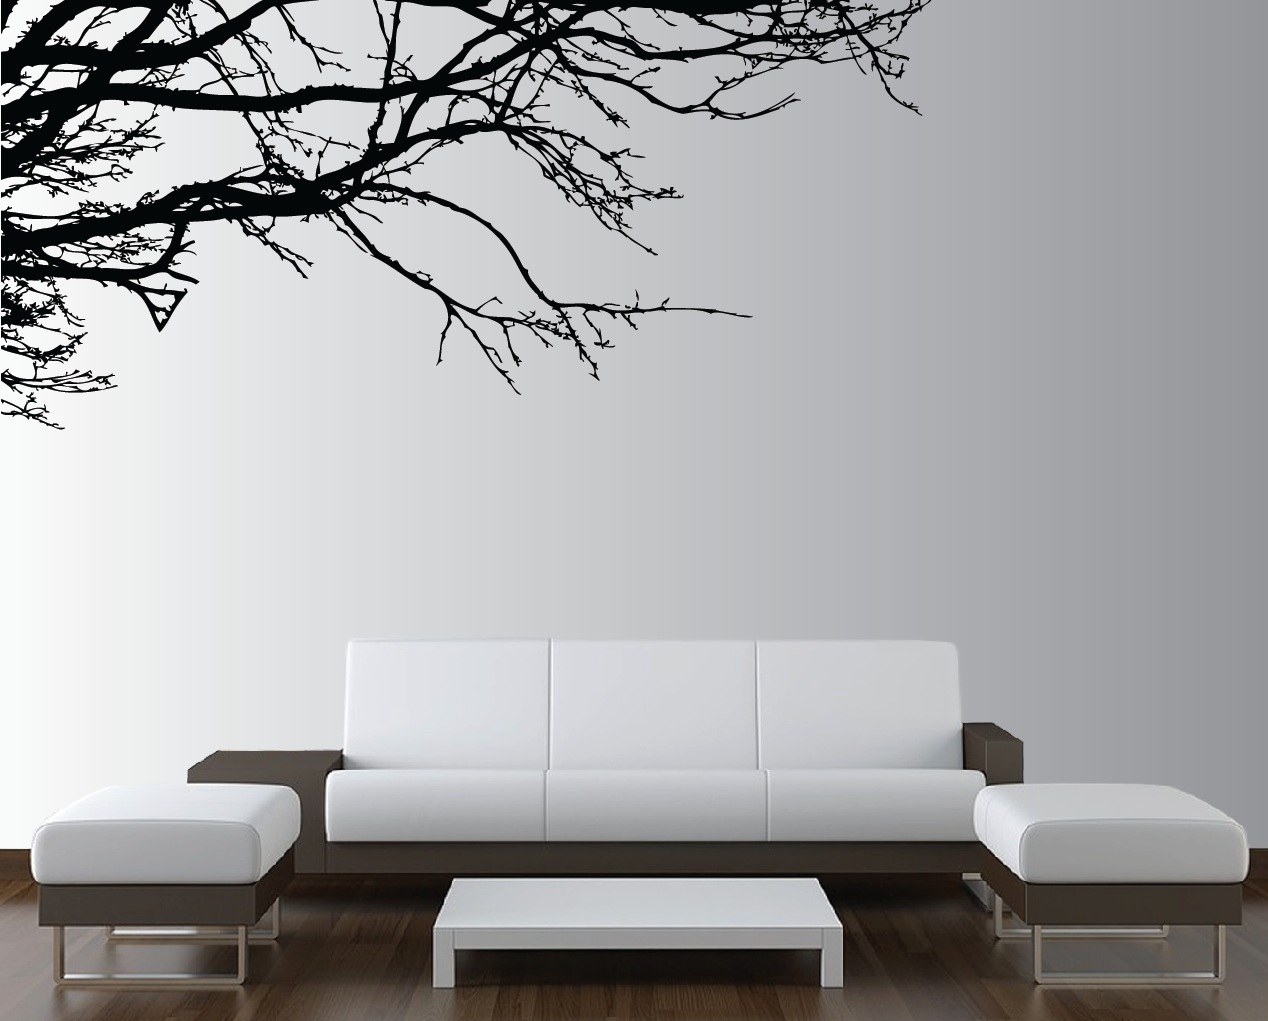 Large Wall Tree Nursery Decal Oak Branches InnovativeStencils - How to put up a tree wall decal